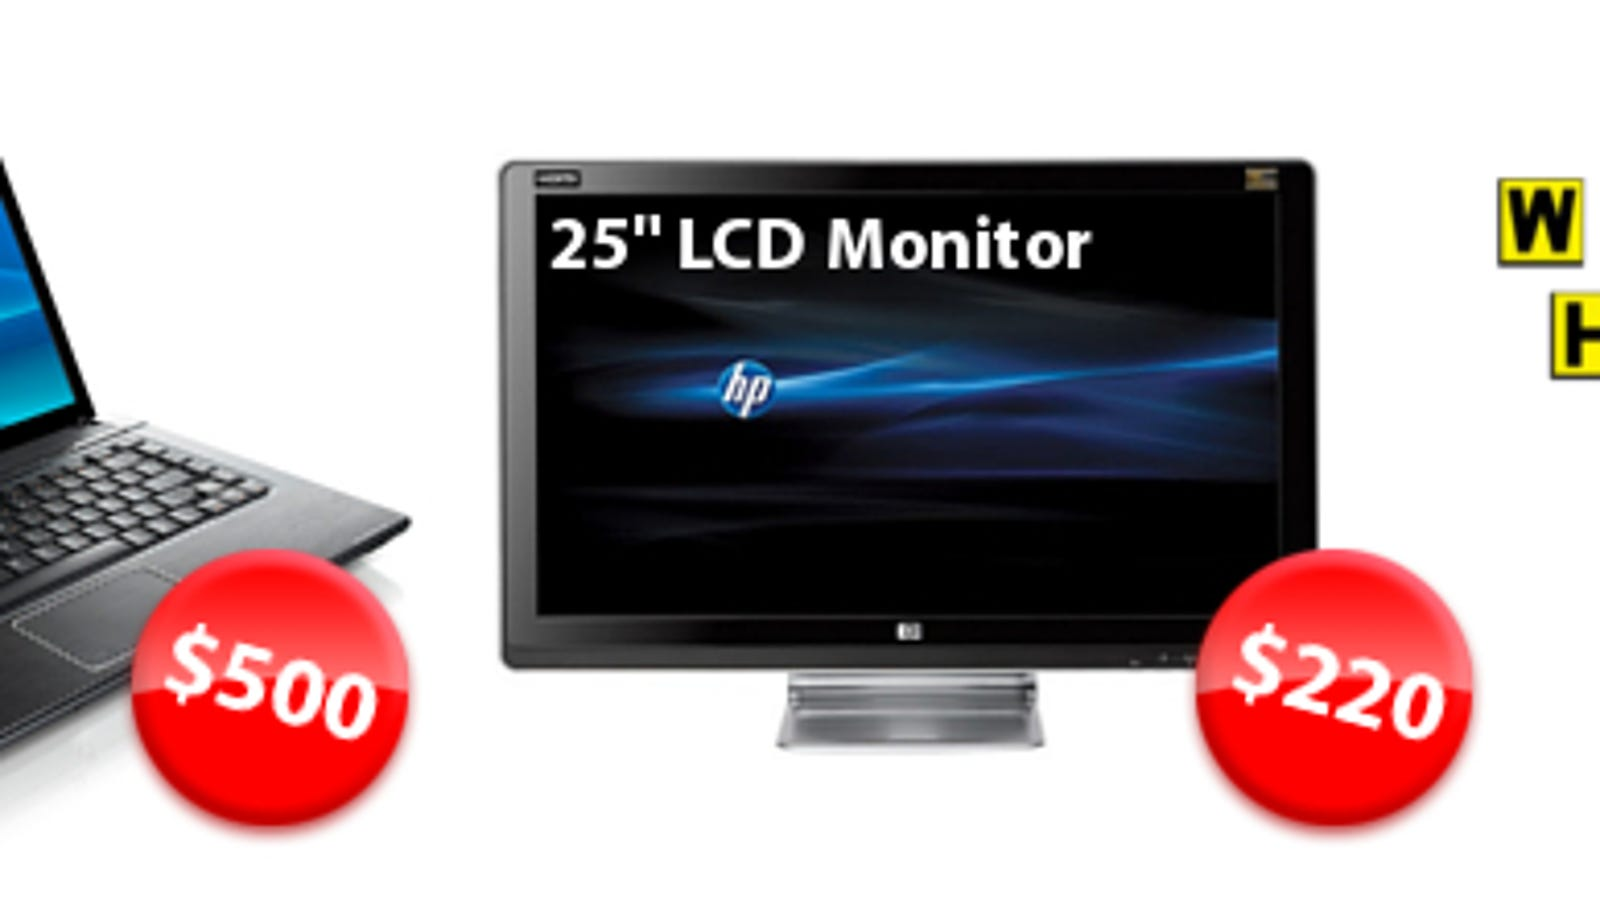 DOWNLOAD DRIVERS: HP 2711 SERIES WIDE LCD MONITOR